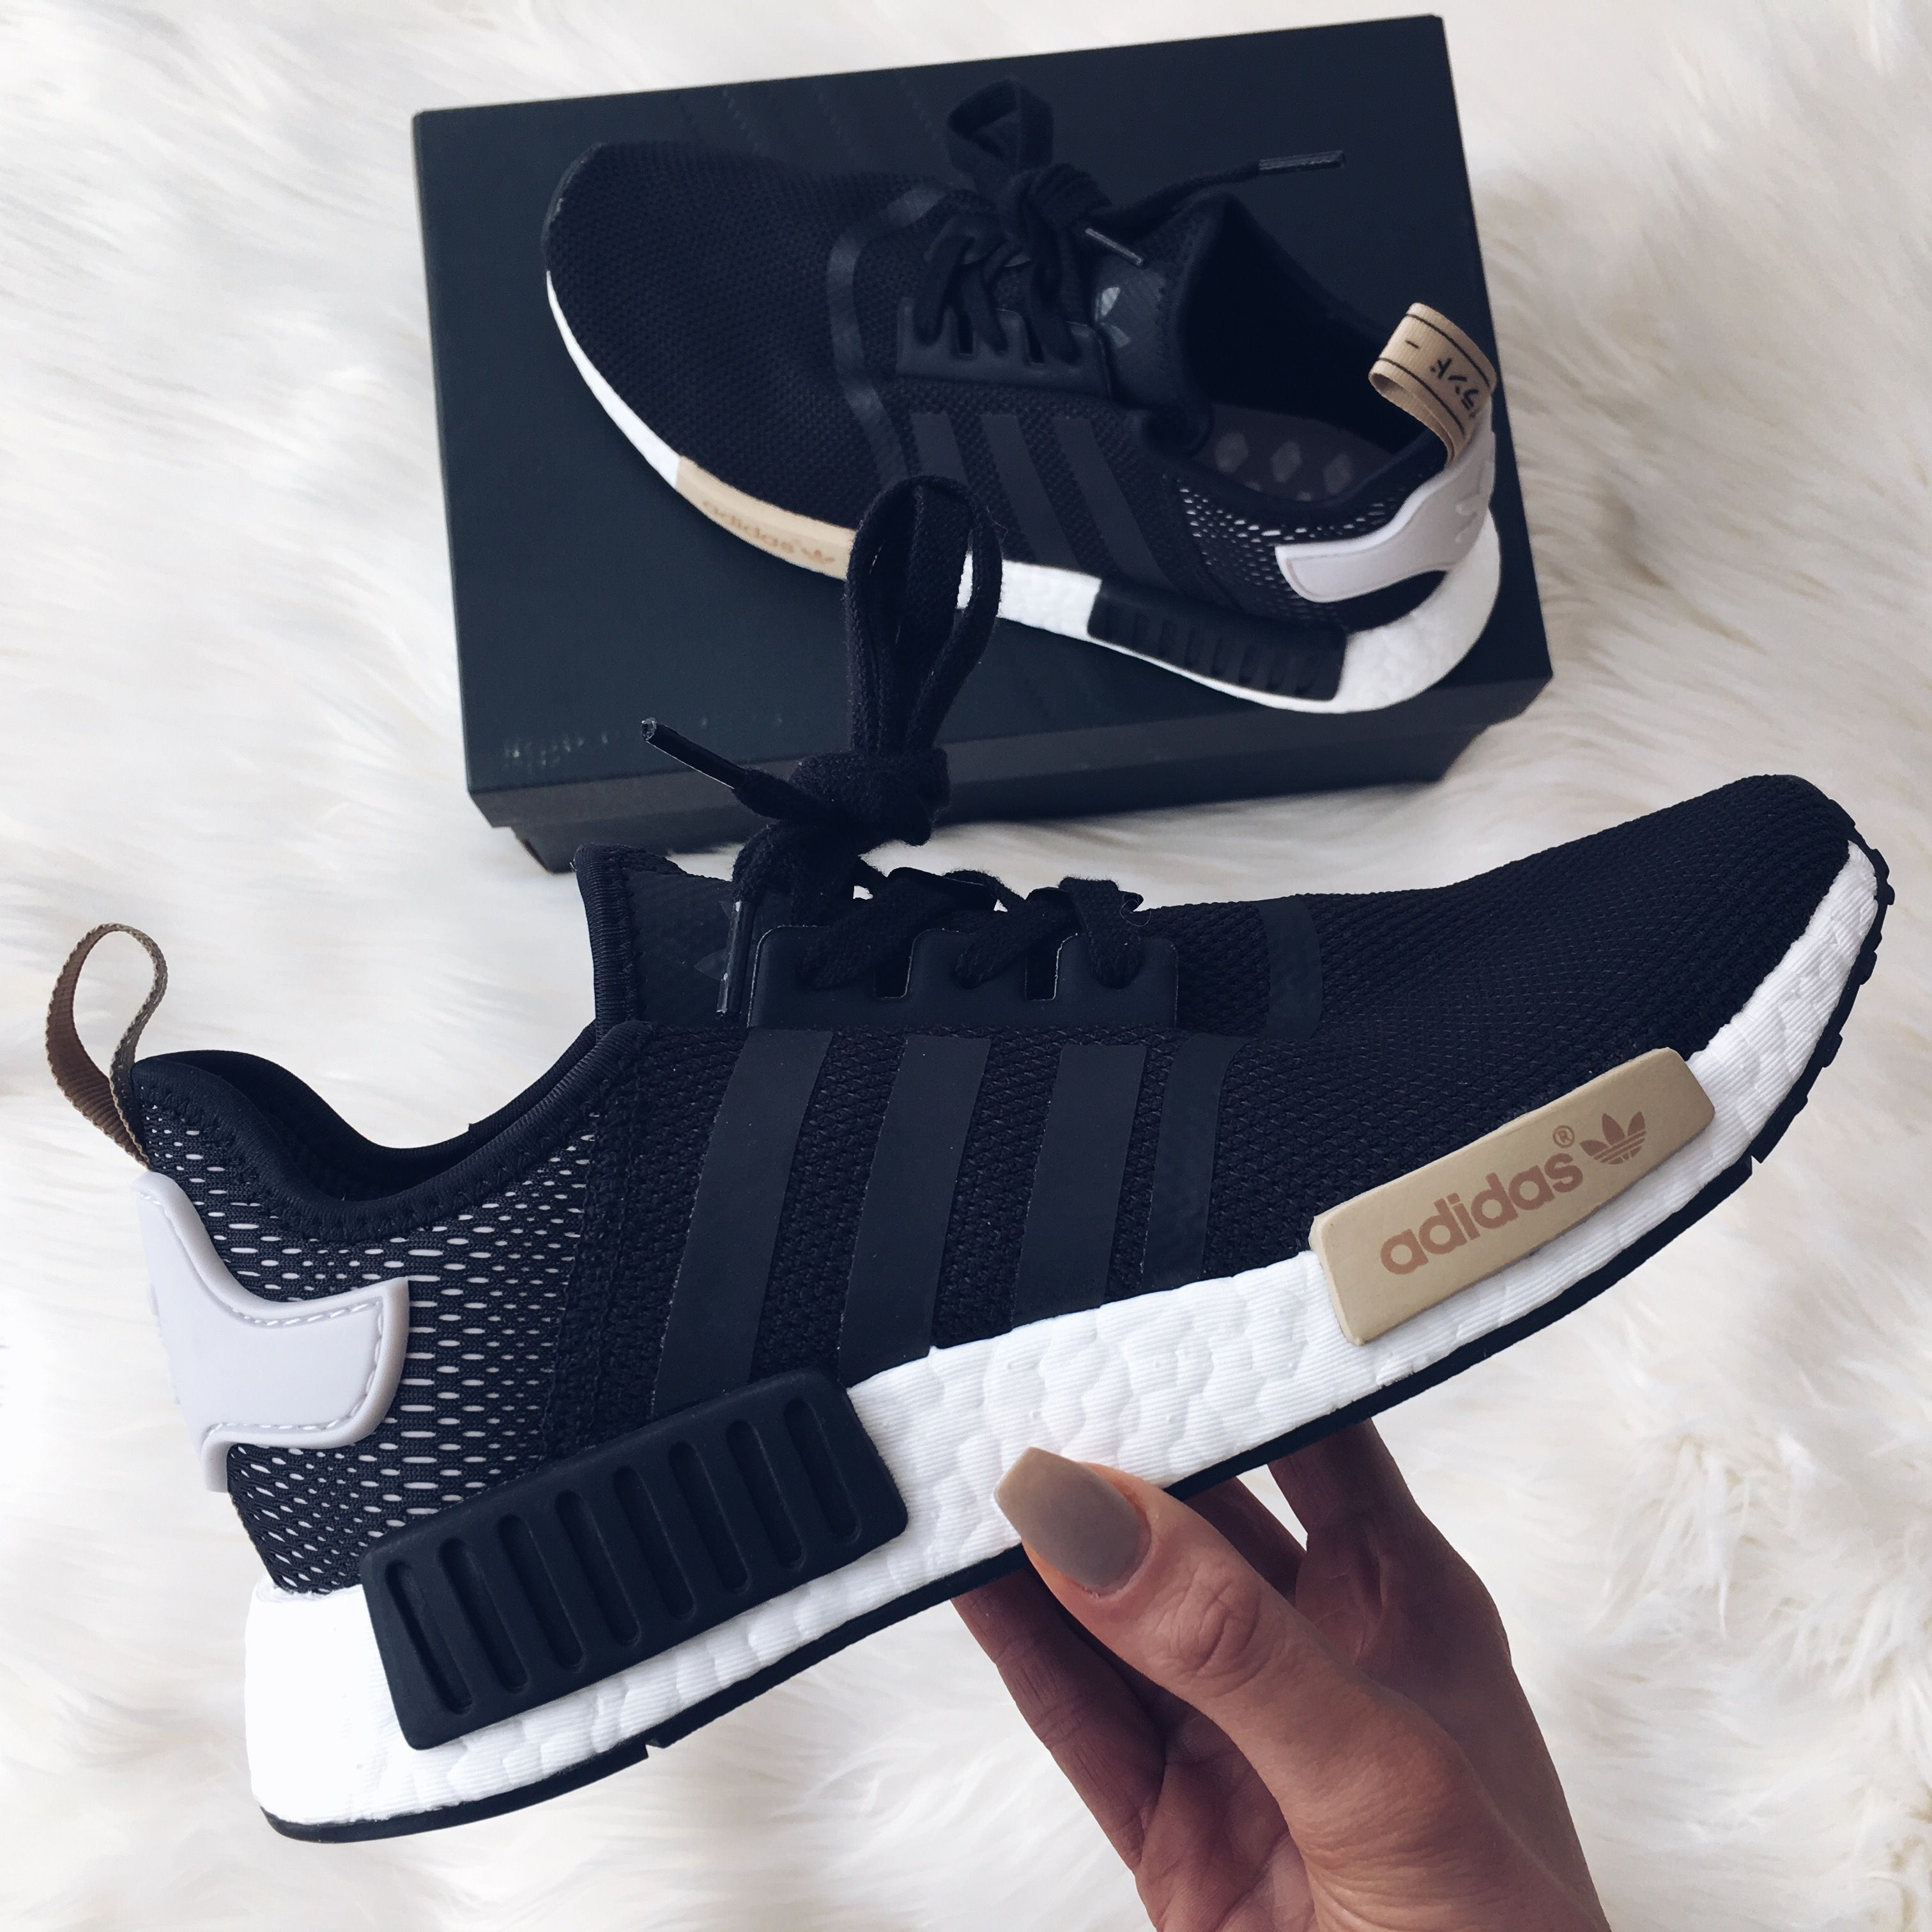 competitive price 2d2d2 8af21 Adidas NMDs - Instagram brittanydawnfitness. Want theses so bad have to  start saving money to get them.